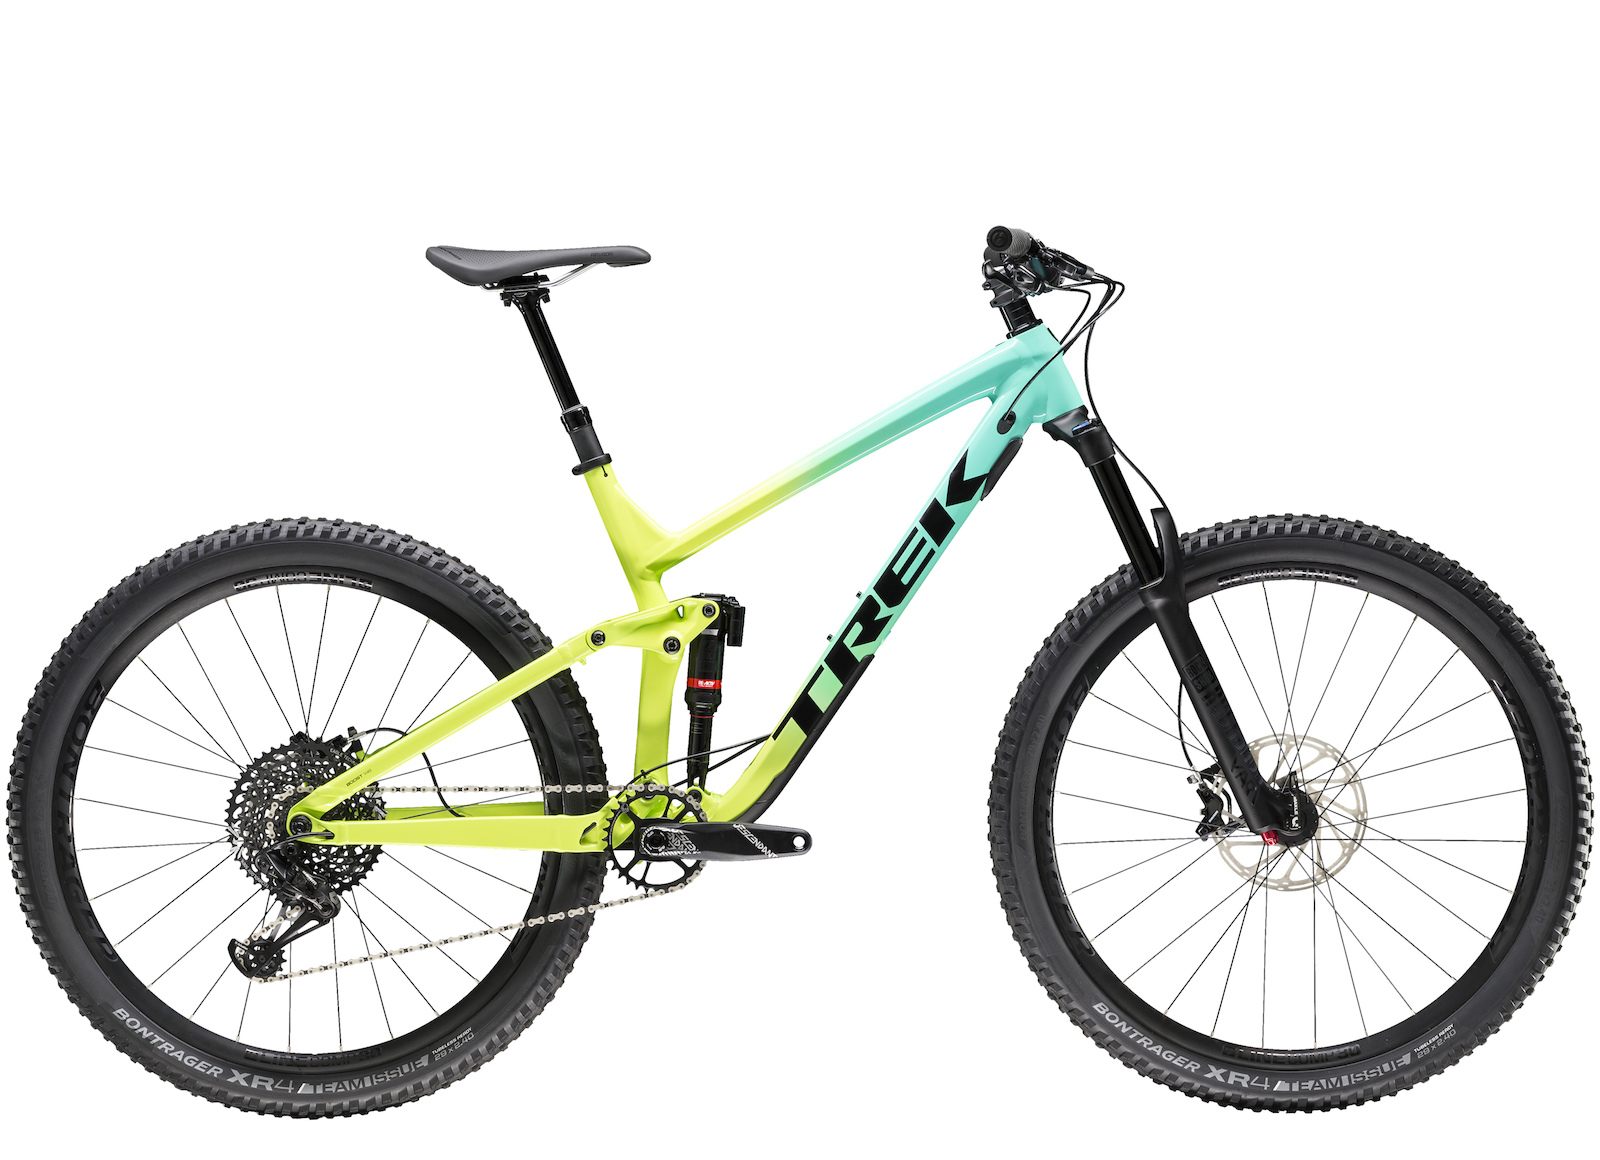 154eaa25dcc There's a New Aluminum Version of the Trek Slash - Pinkbike